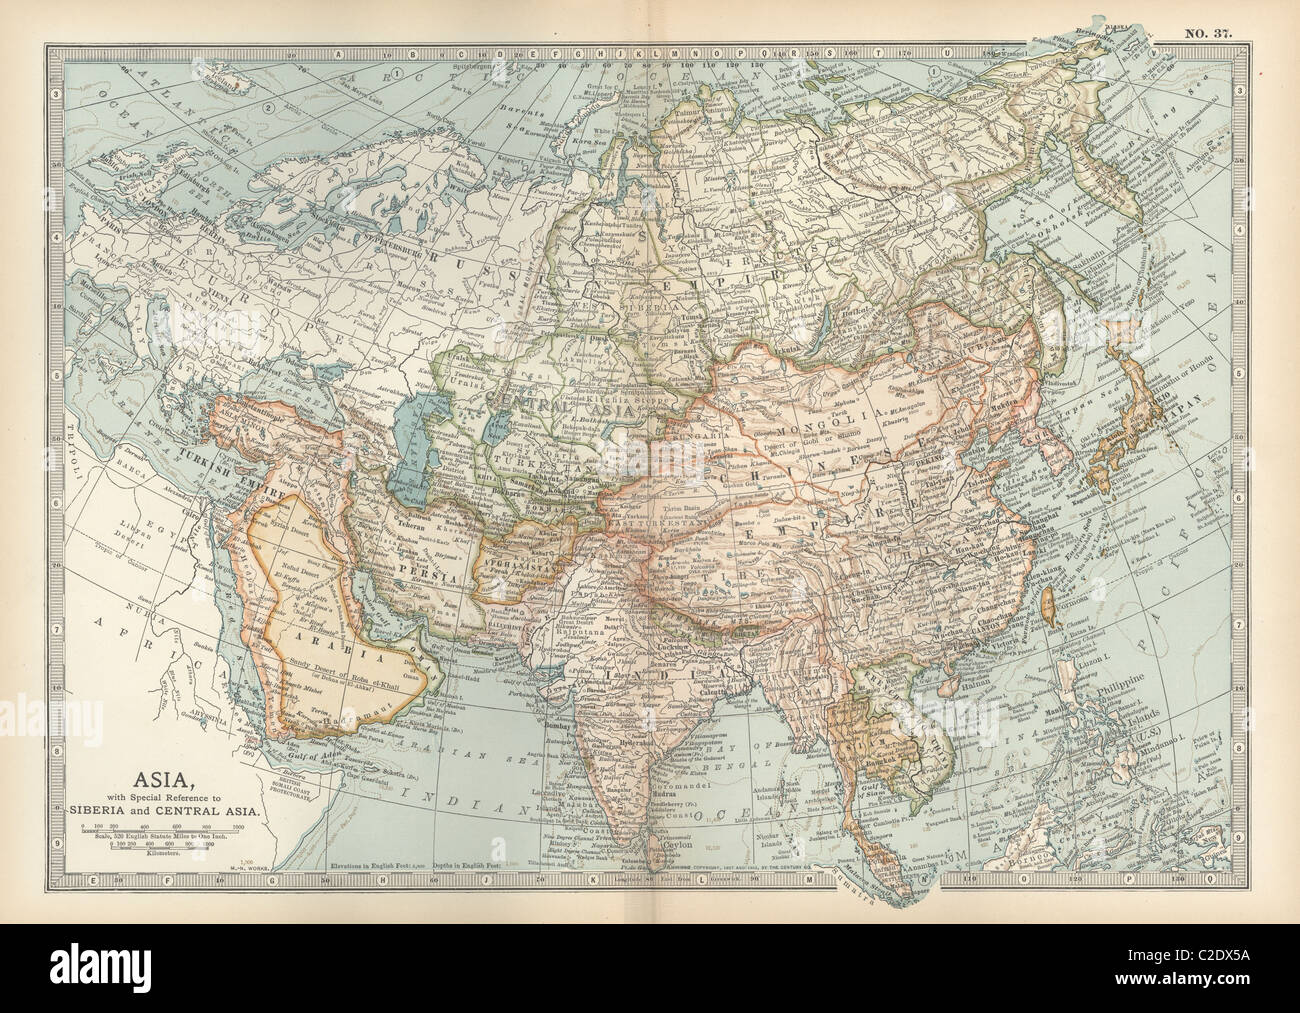 Map of Asia with Siberia and Central Asia - Stock Image